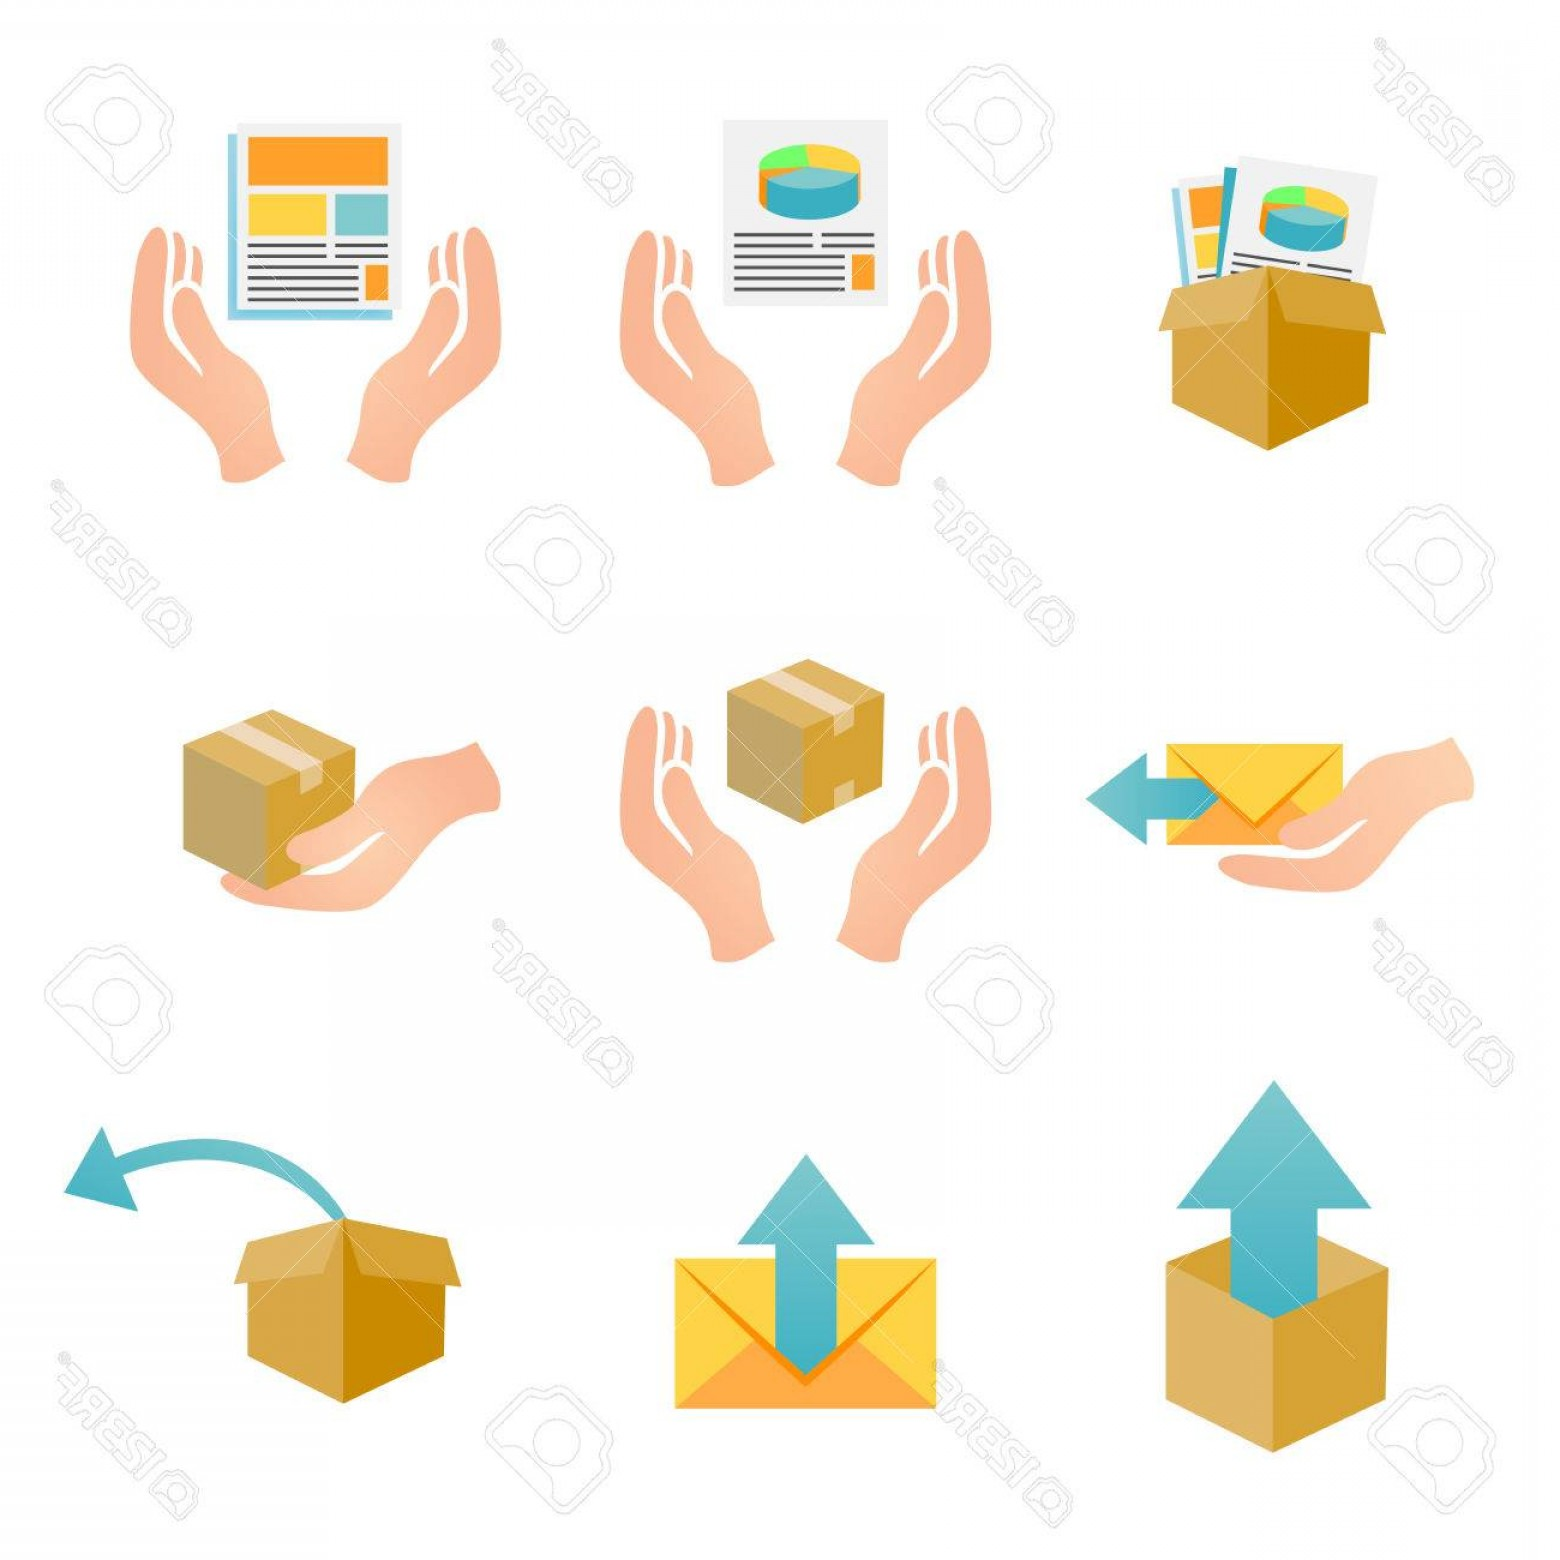 Vector Marketing Corporation Contact: Photostock Vector Marketing Company Digital Products Icons With Collateral And Packing Boxes